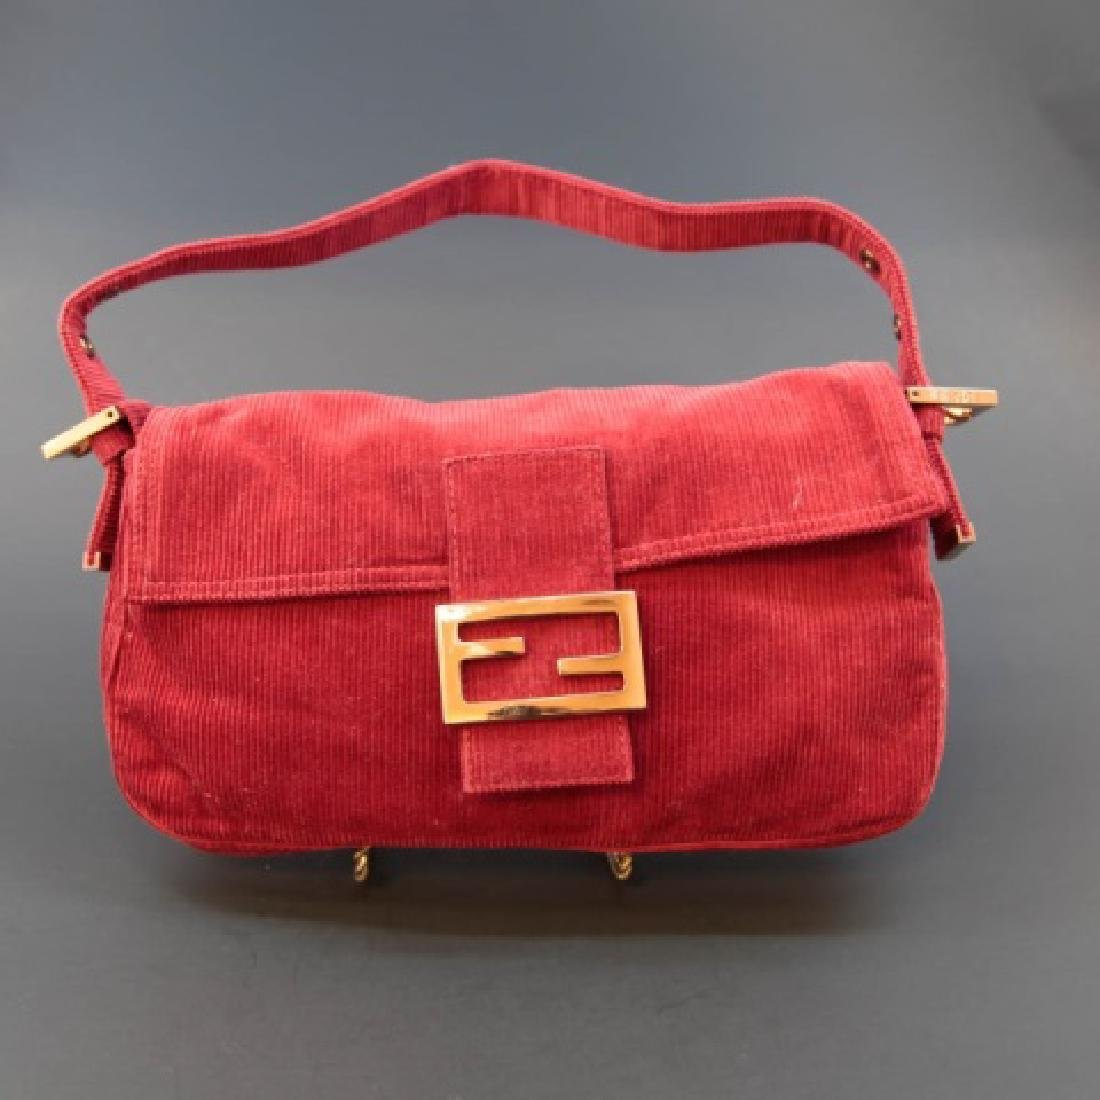 Fendi Brick Red Corduroy Handbag with Fabric Pouch - 3